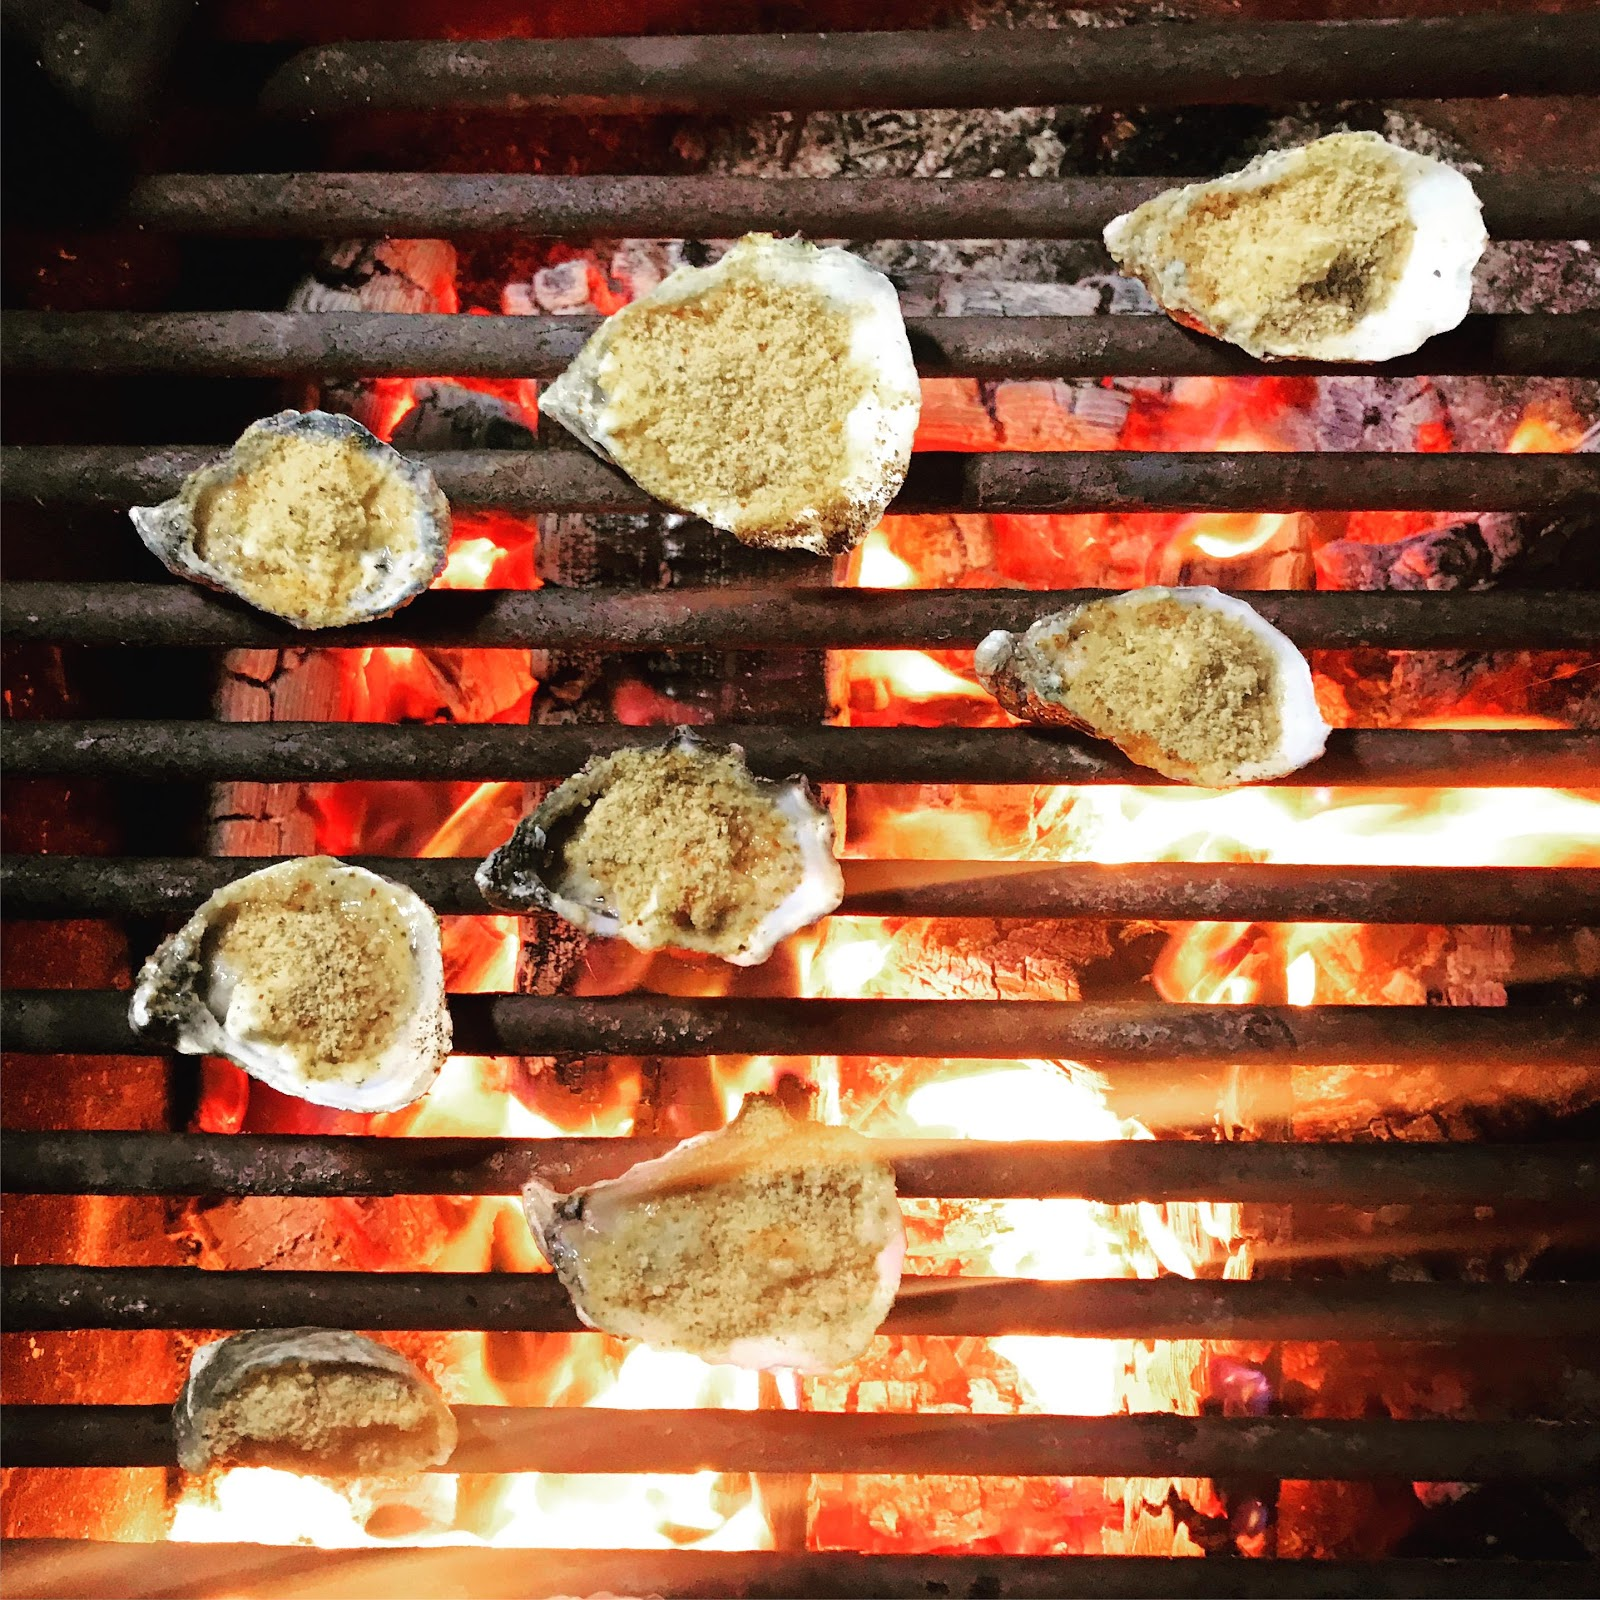 BBQ'd Pacific Gold Oysters - This is an awesome backyard BBQ style way to enjoy our Pacific Gold Oysters. Cooked oysters are delicious, much like a great steak you want to be sure and not over cook them and lose the oyster's delicious, bright ocean flavor.Read More